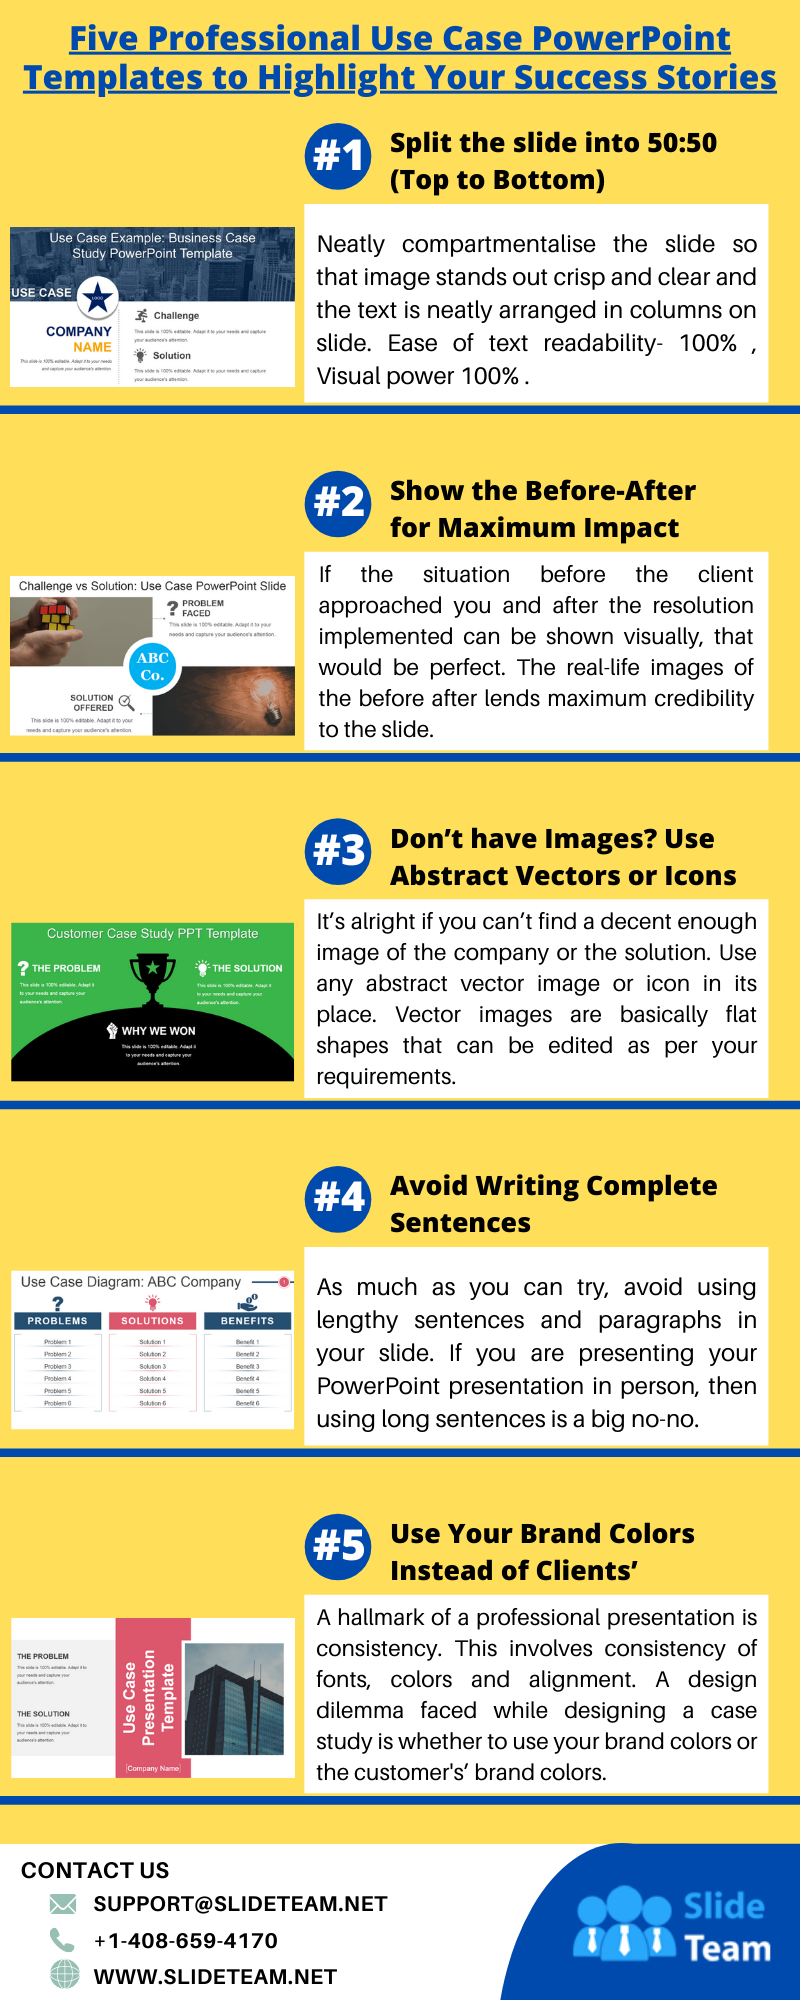 Five-professional-use-case-powerpoint-templates-to-highlight-your-success-stories #infographic #Design & Research